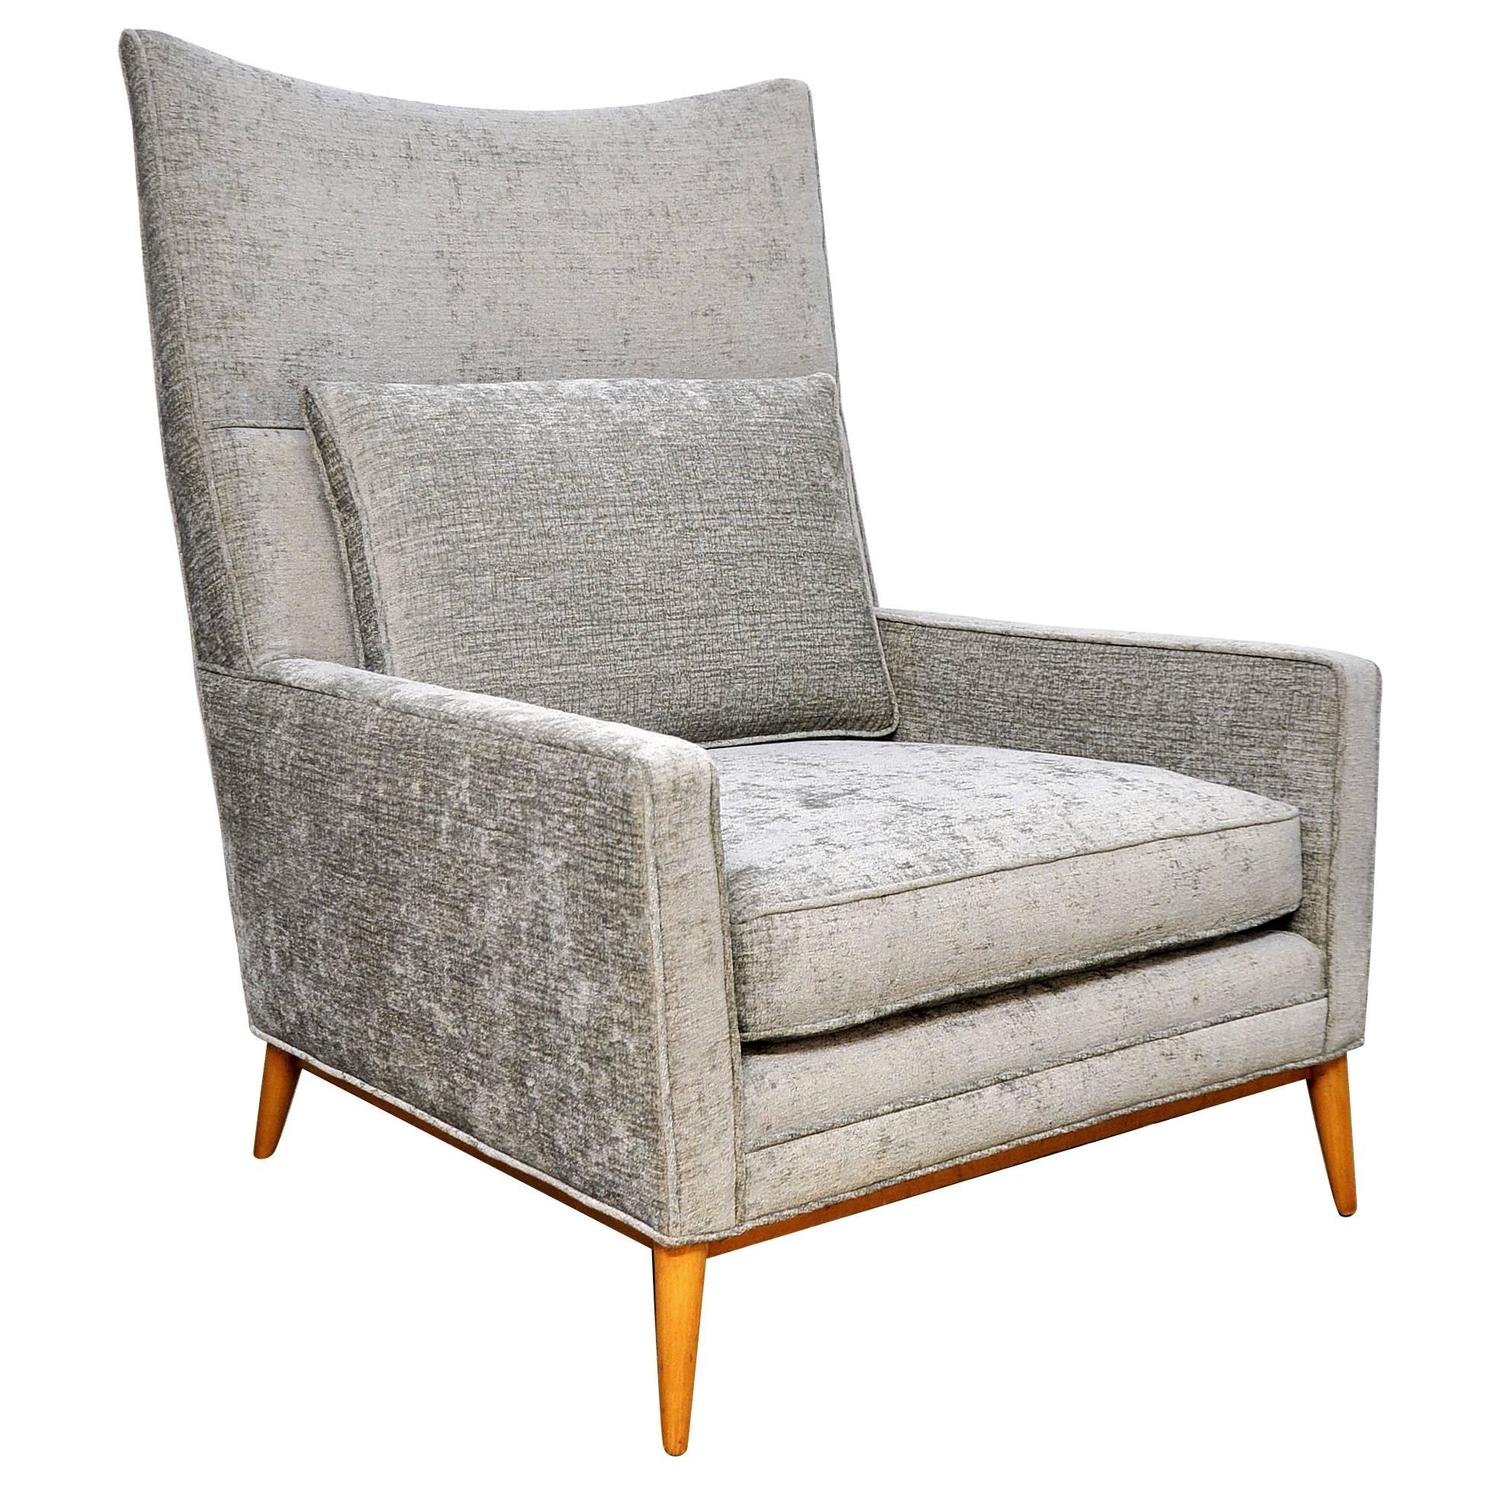 Paul McCobb Directional 314 Model High Back Lounge Chair at 1stdibs